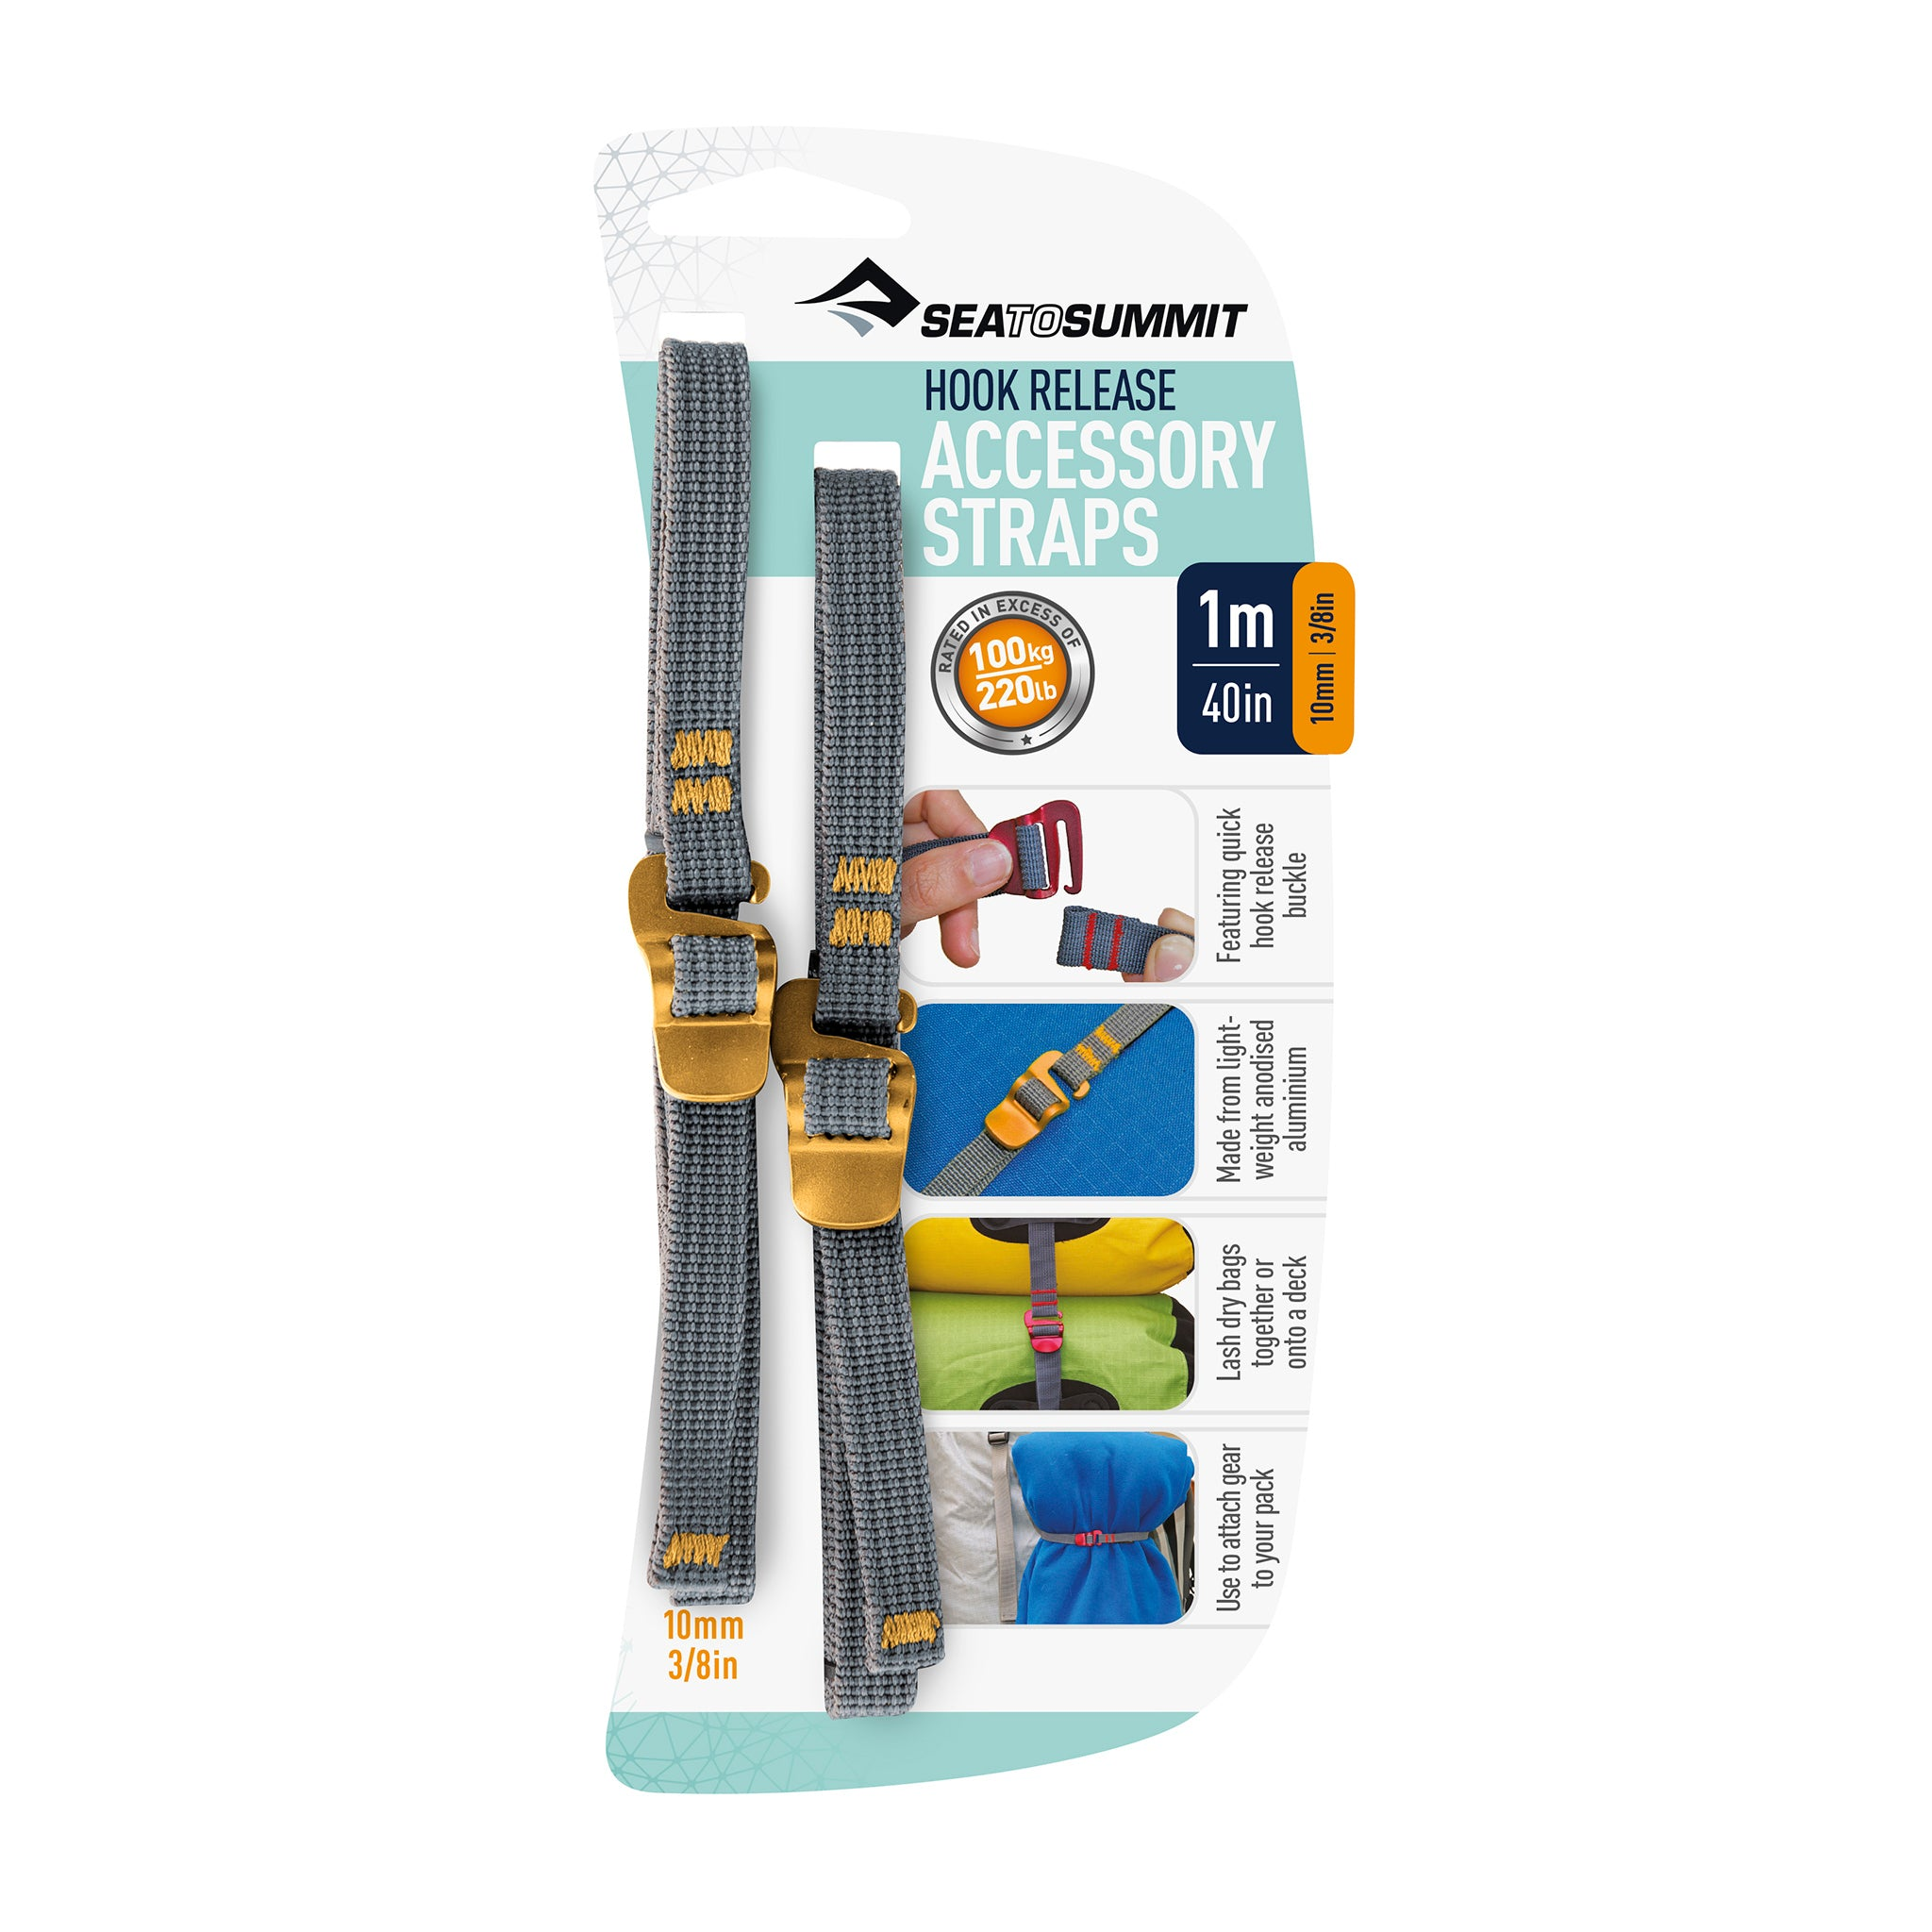 Accessory Strap with Hook Release by Sea to Summit